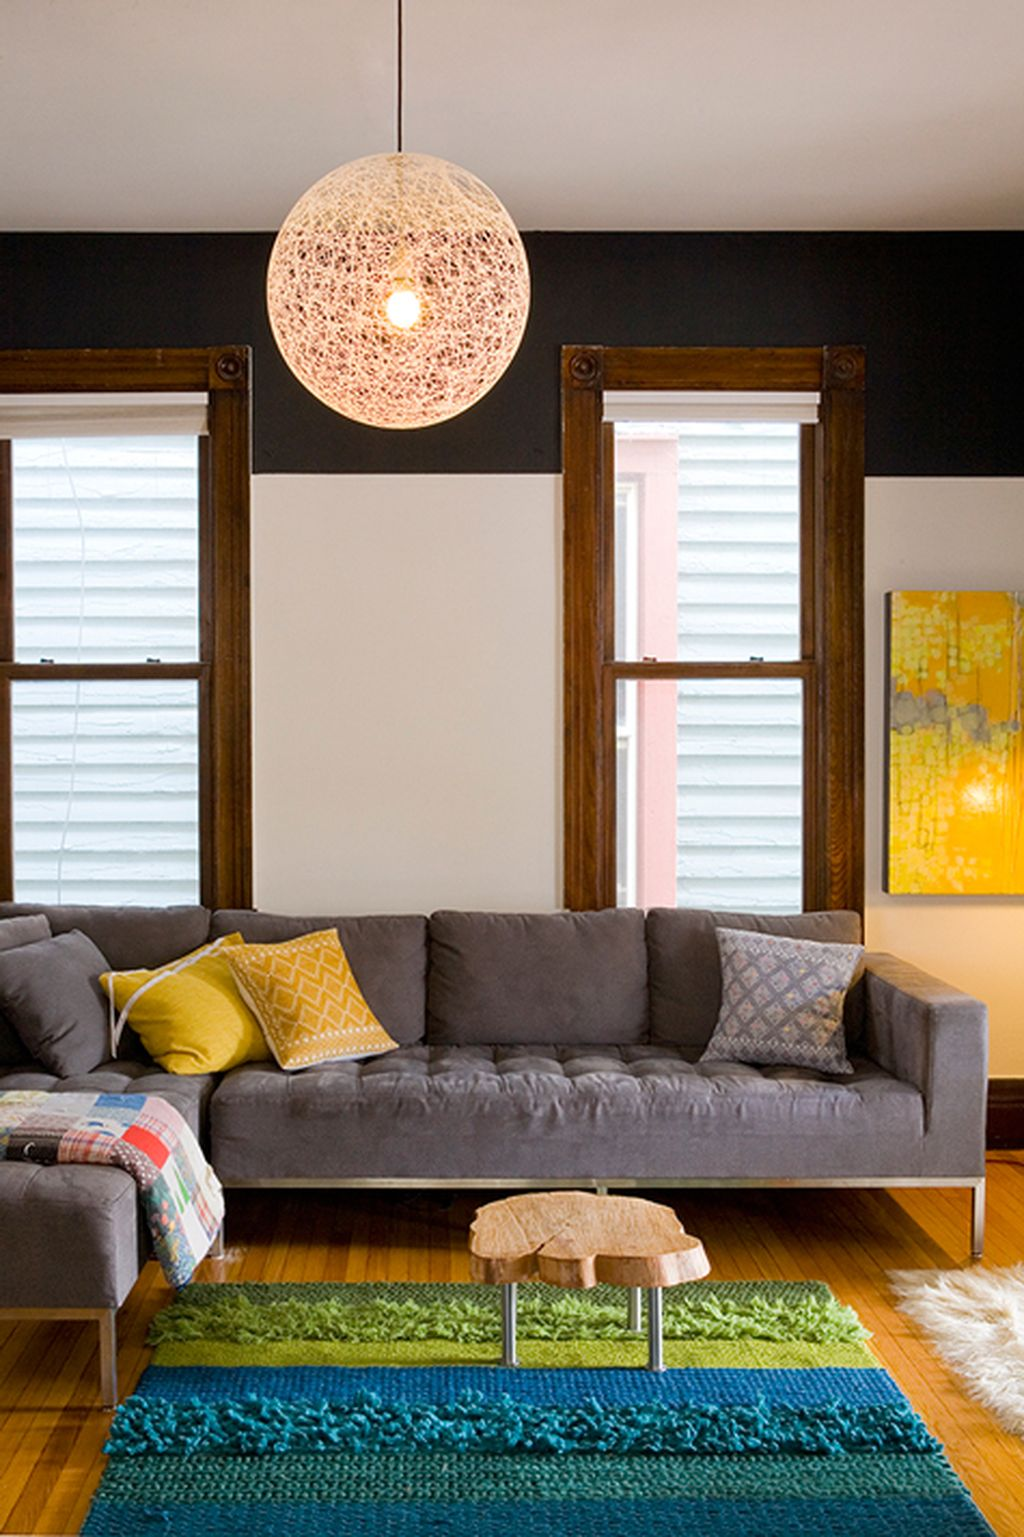 Totally Outstanding Sectional Sofa Decoration Ideas With Lamps 07